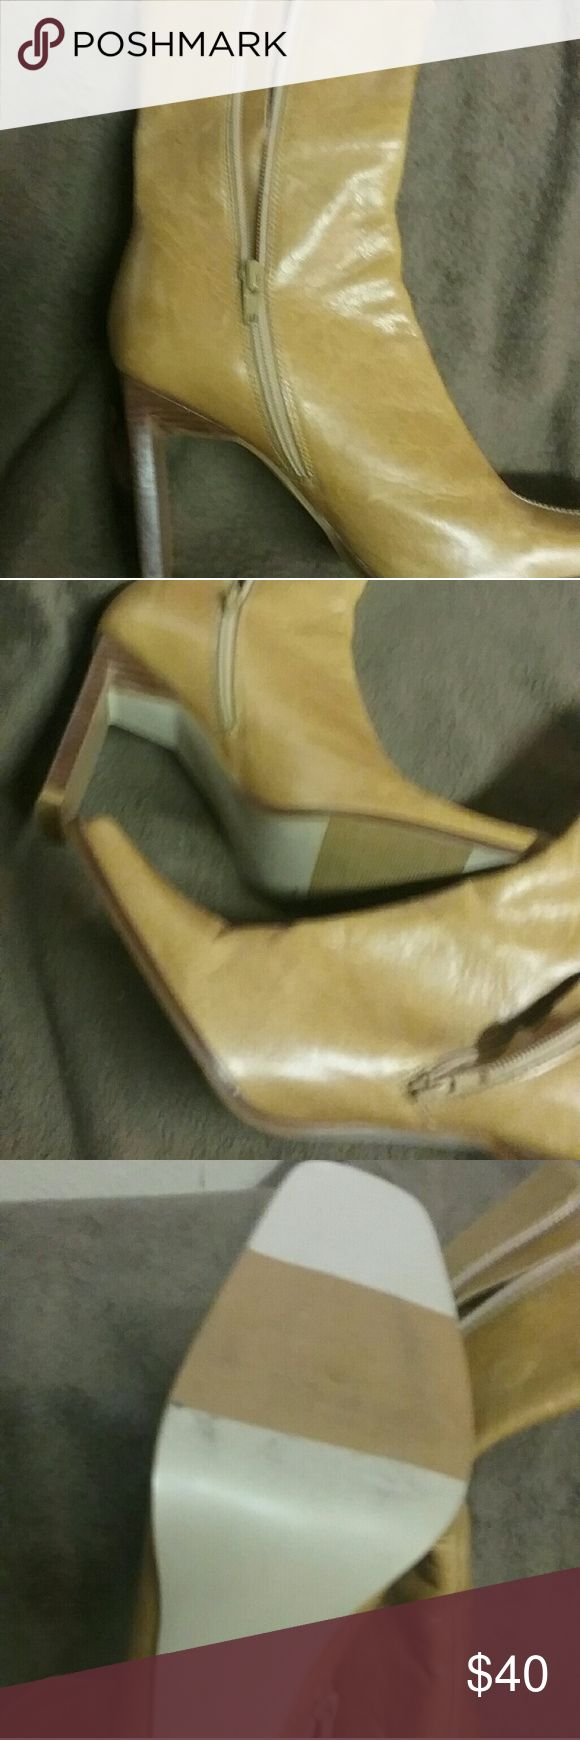 """HIGH HEELED BOOTIES SEXY SQUARE TOE 4.5"""" HEELS Zerres Shoes Heeled Boots"""